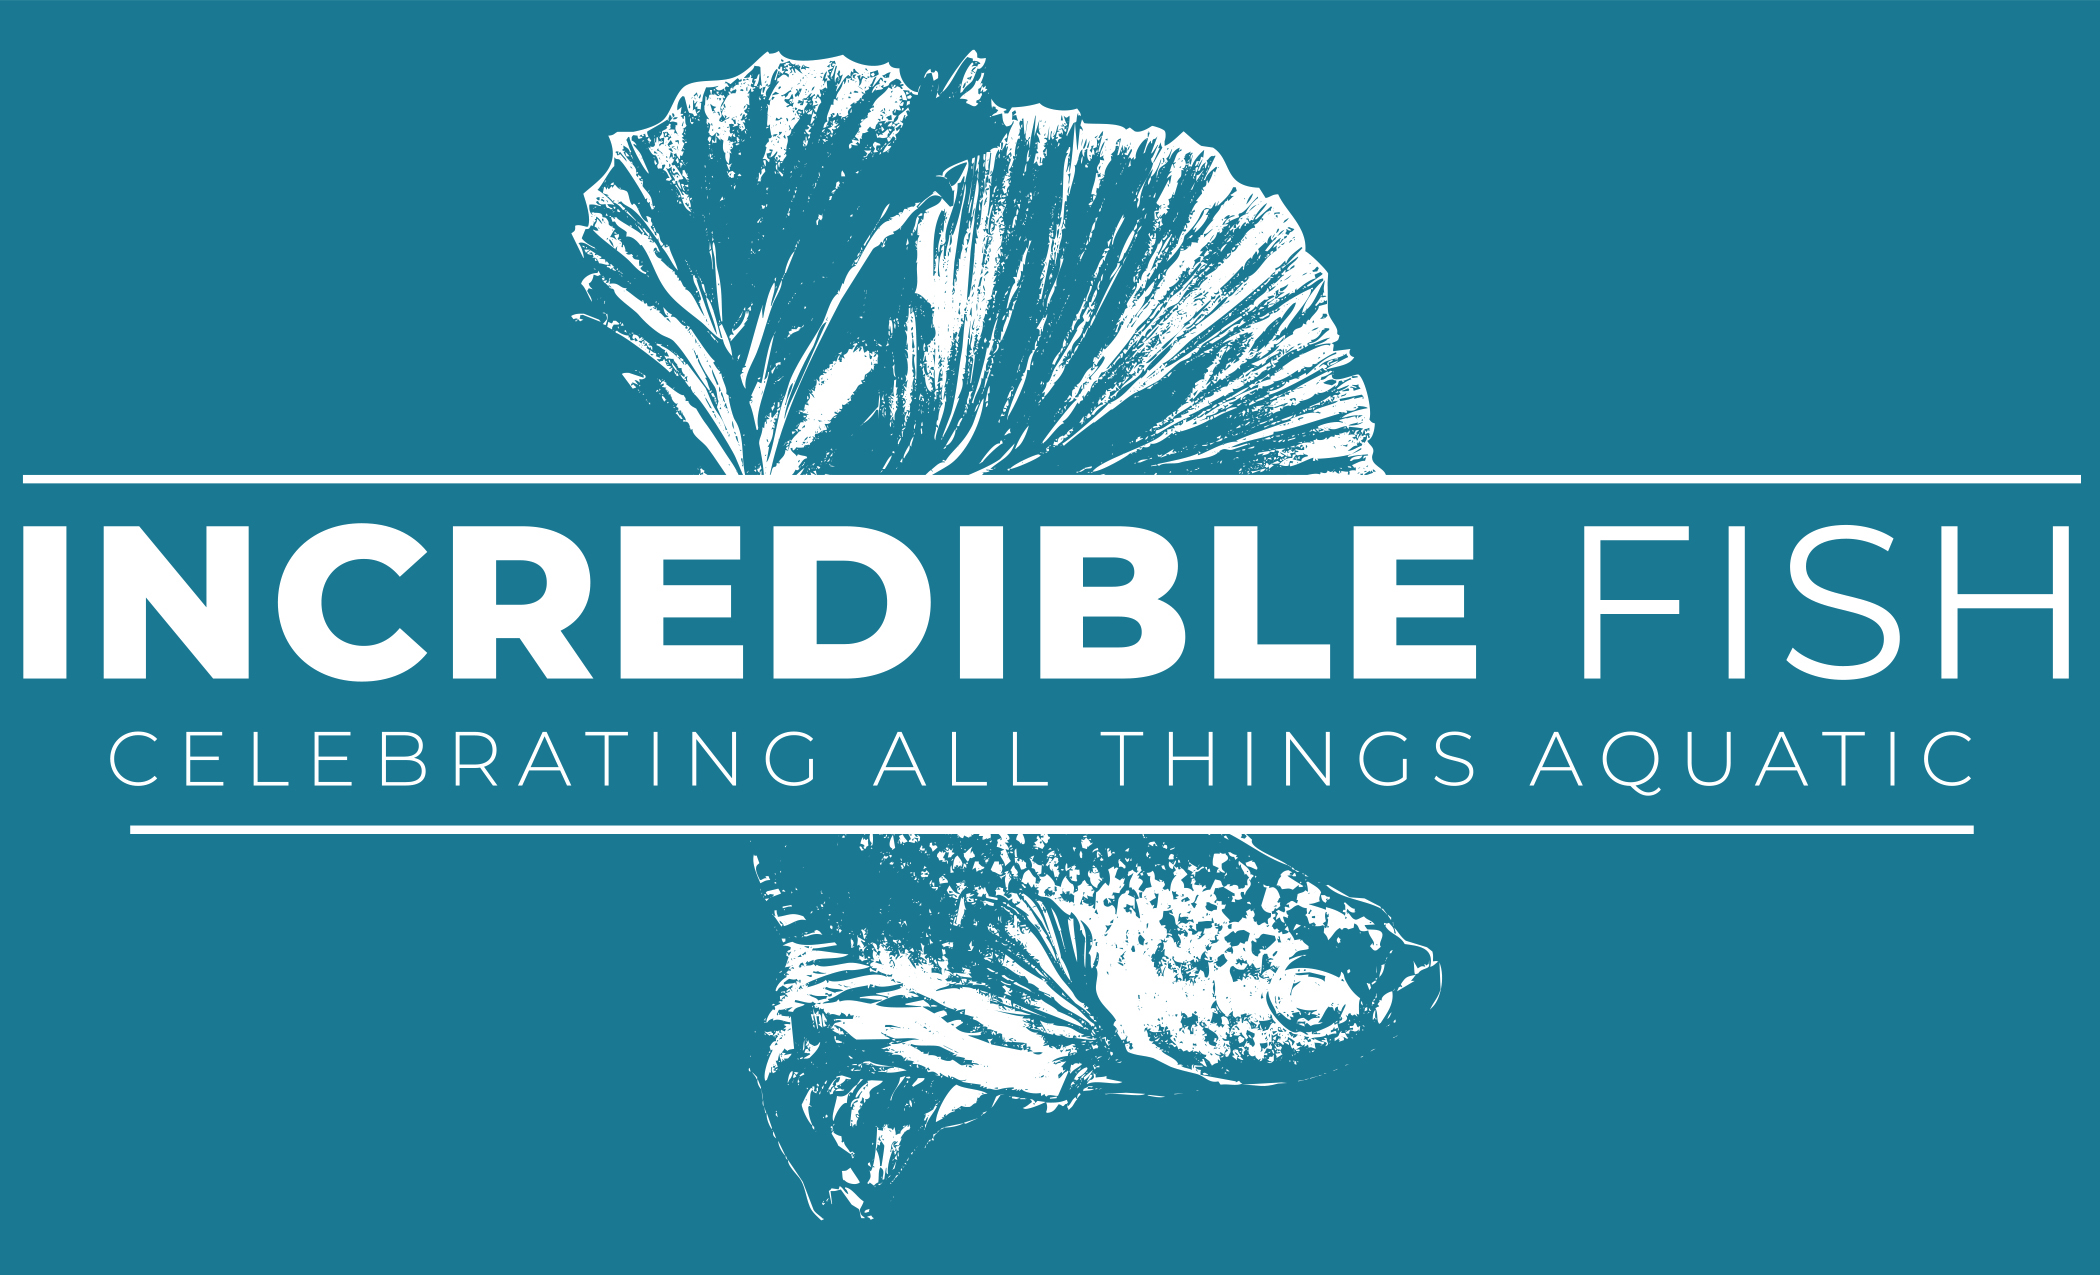 INCREDIBLE FISH LOGO Width 2100px X Height